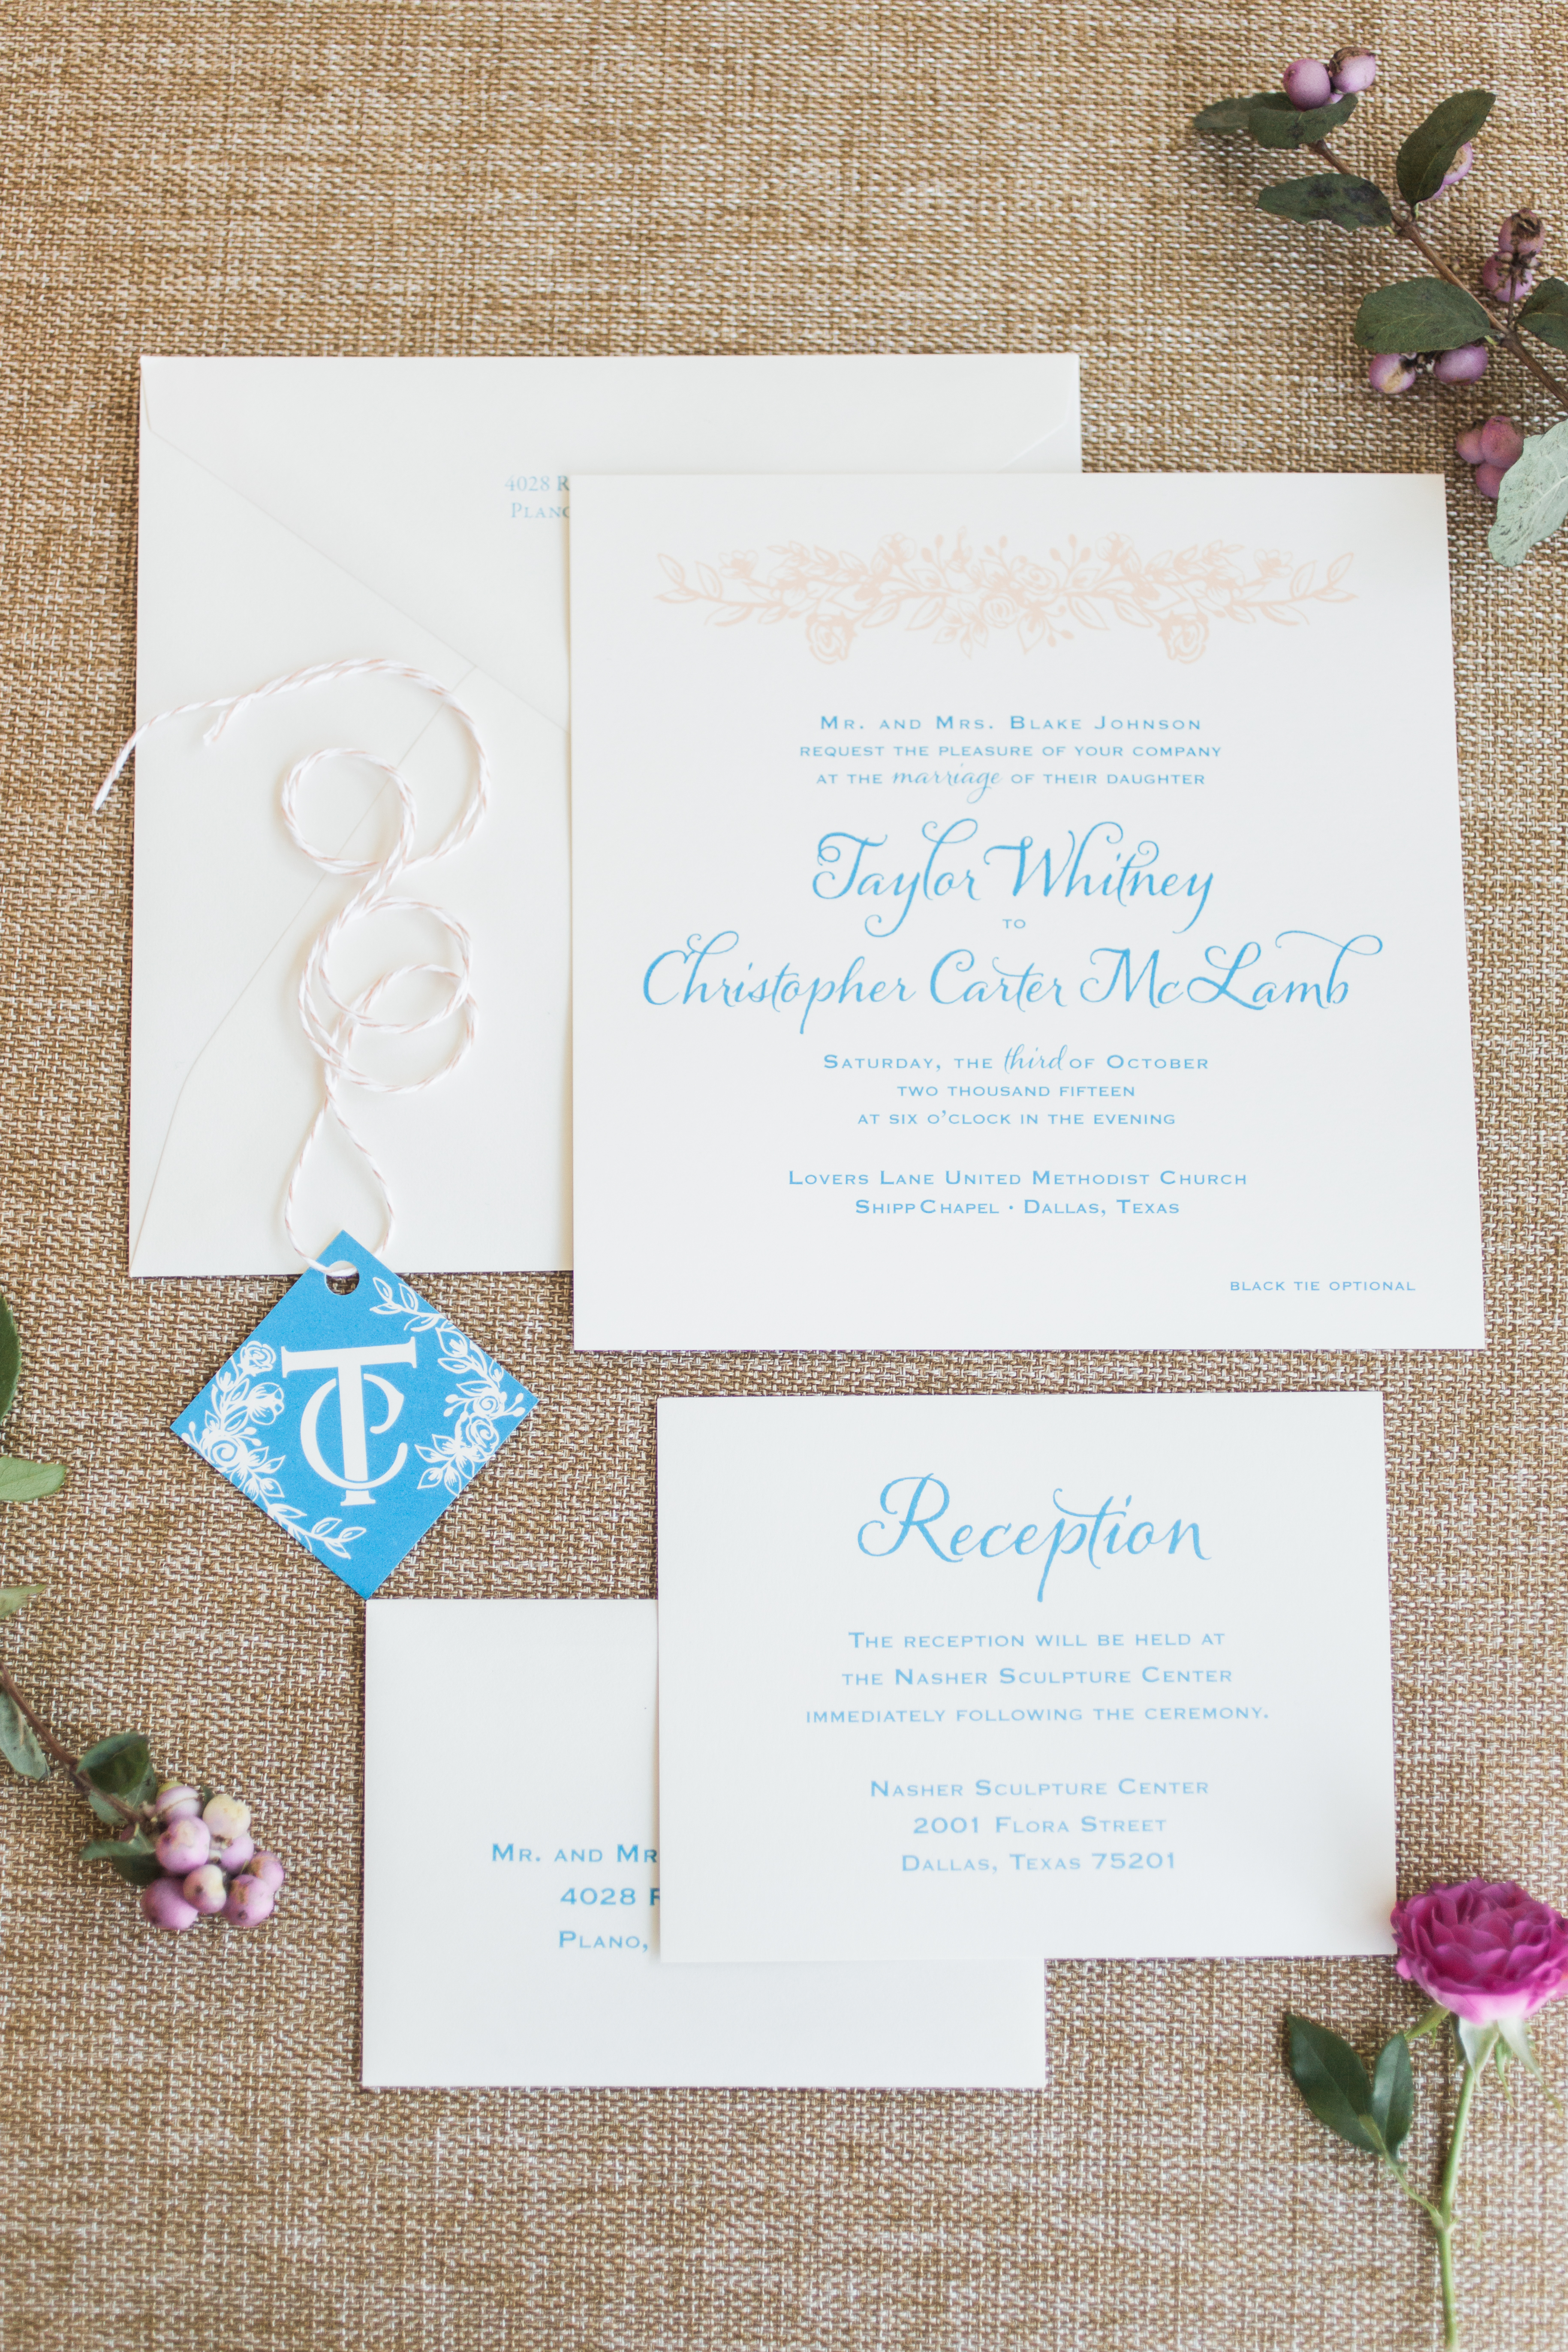 Johnson + McLamb Wedding - As You Wish Events